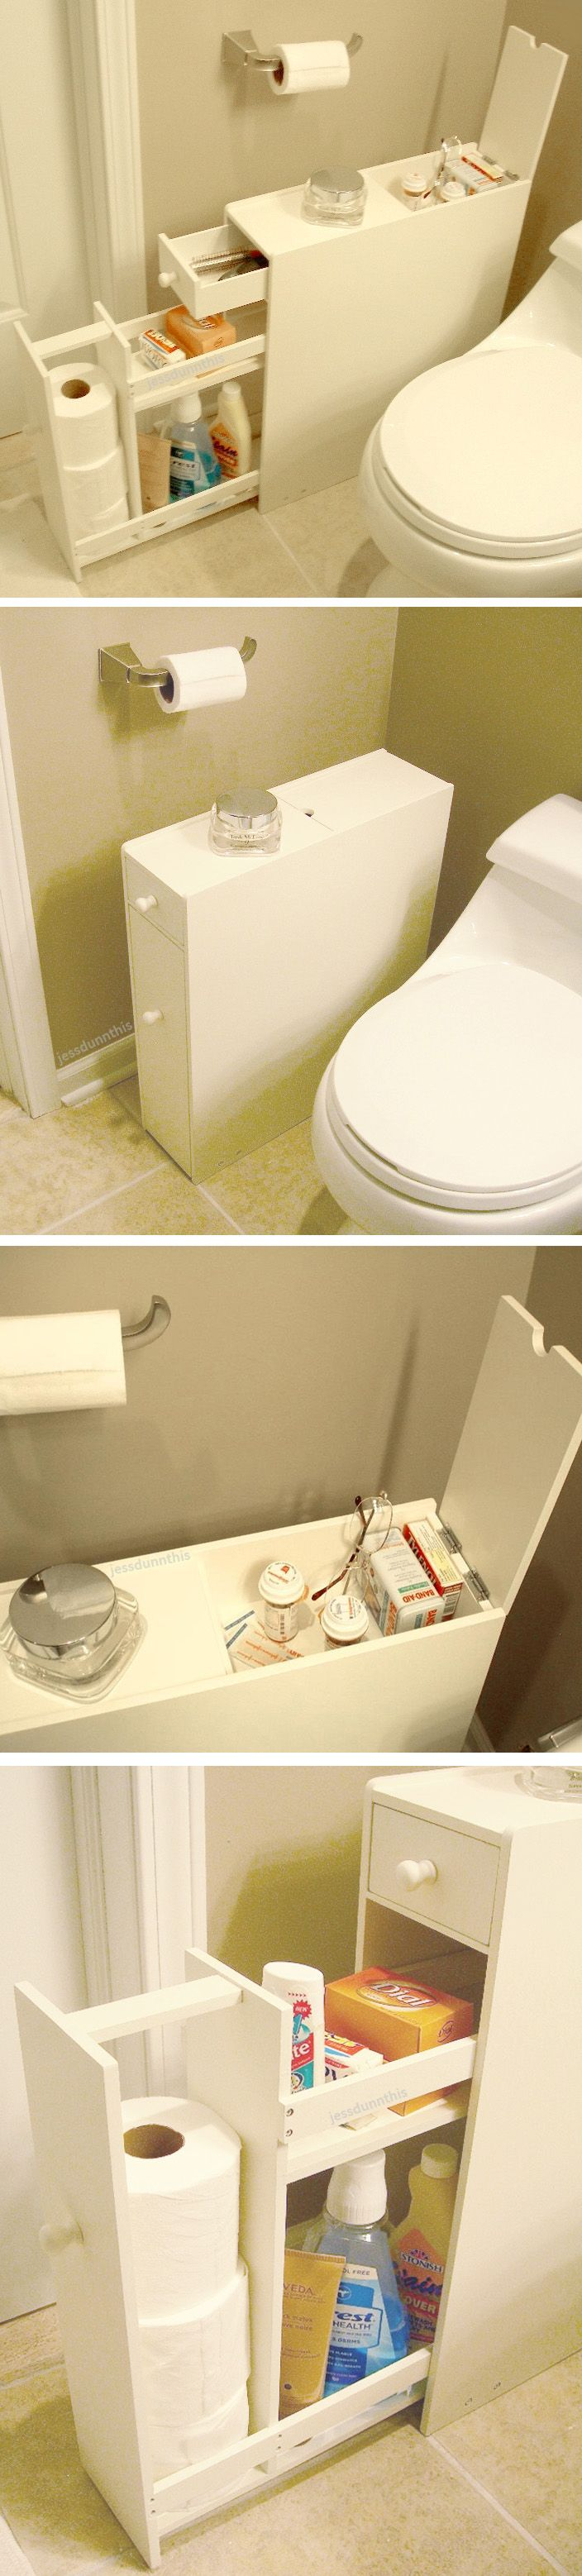 Bathroom space saver floor cabinet // stores up to 12 rolls of toilet paper and fits beside the closet - brilliant idea! #product_design